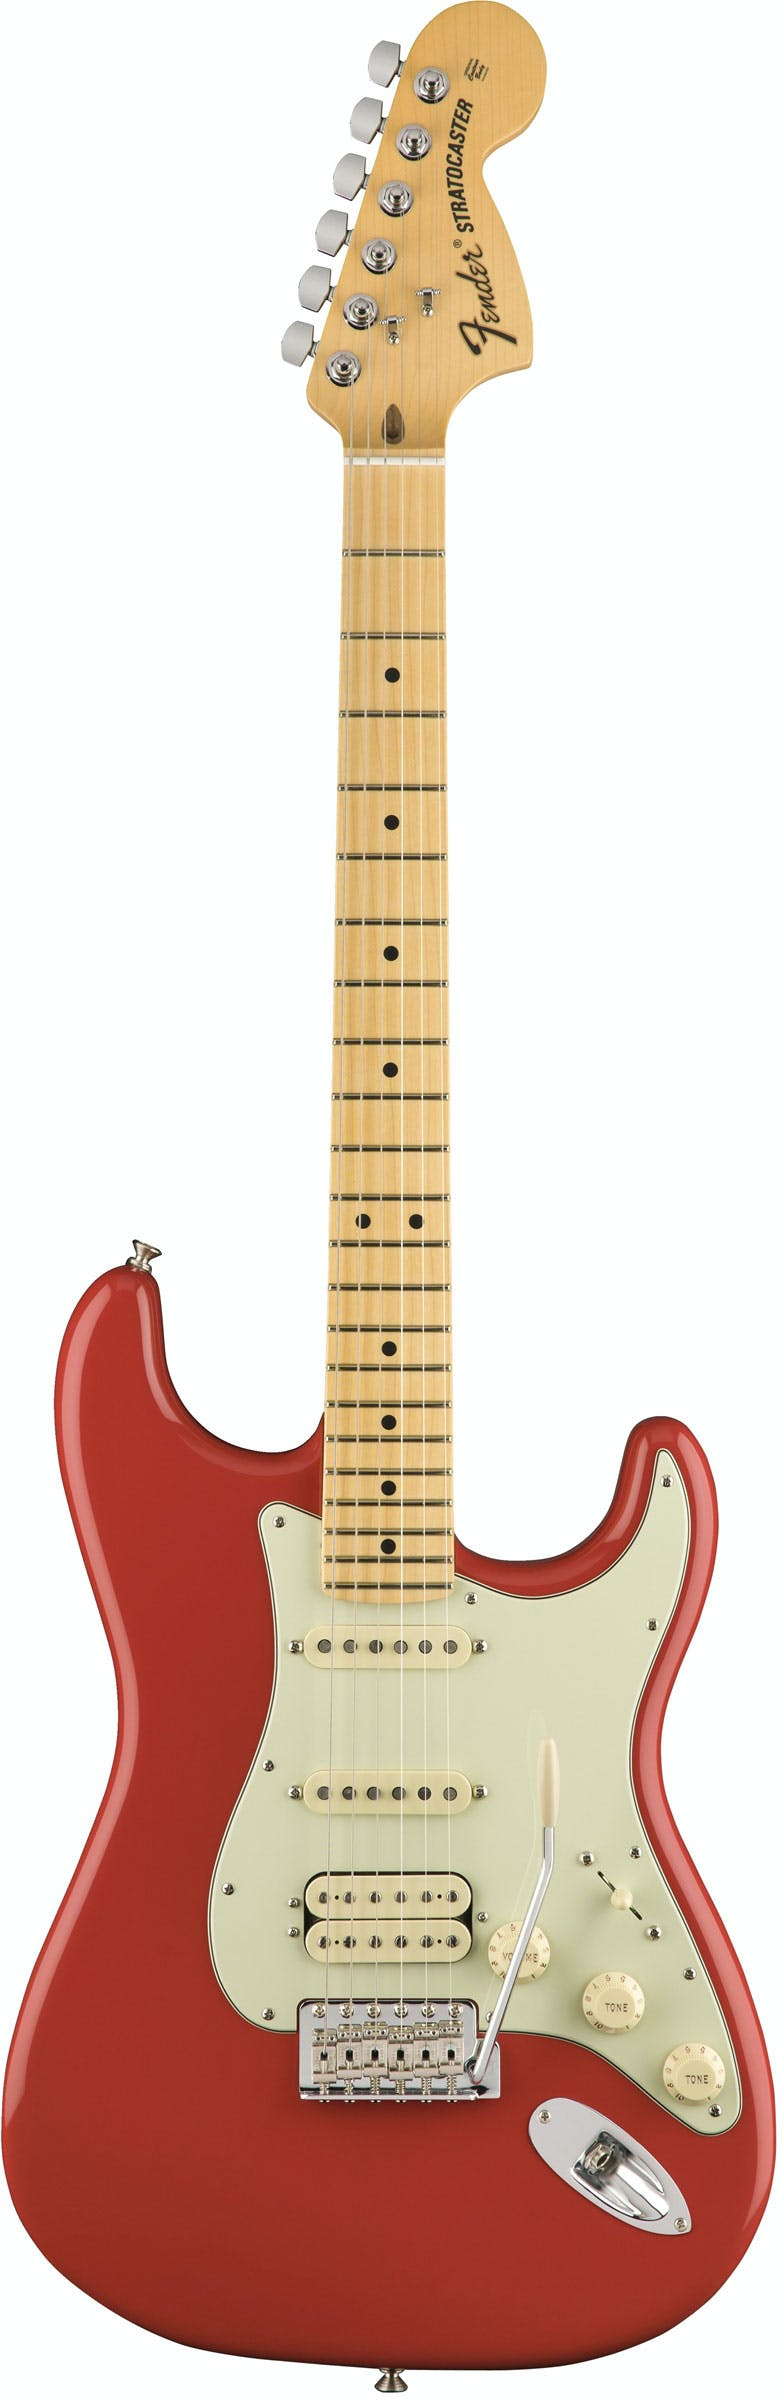 Mij Strat Hss Wiring Start Building A Diagram Fender American Special Stratocaster Limited Edition In Fiesta Rh Andertons Co Uk